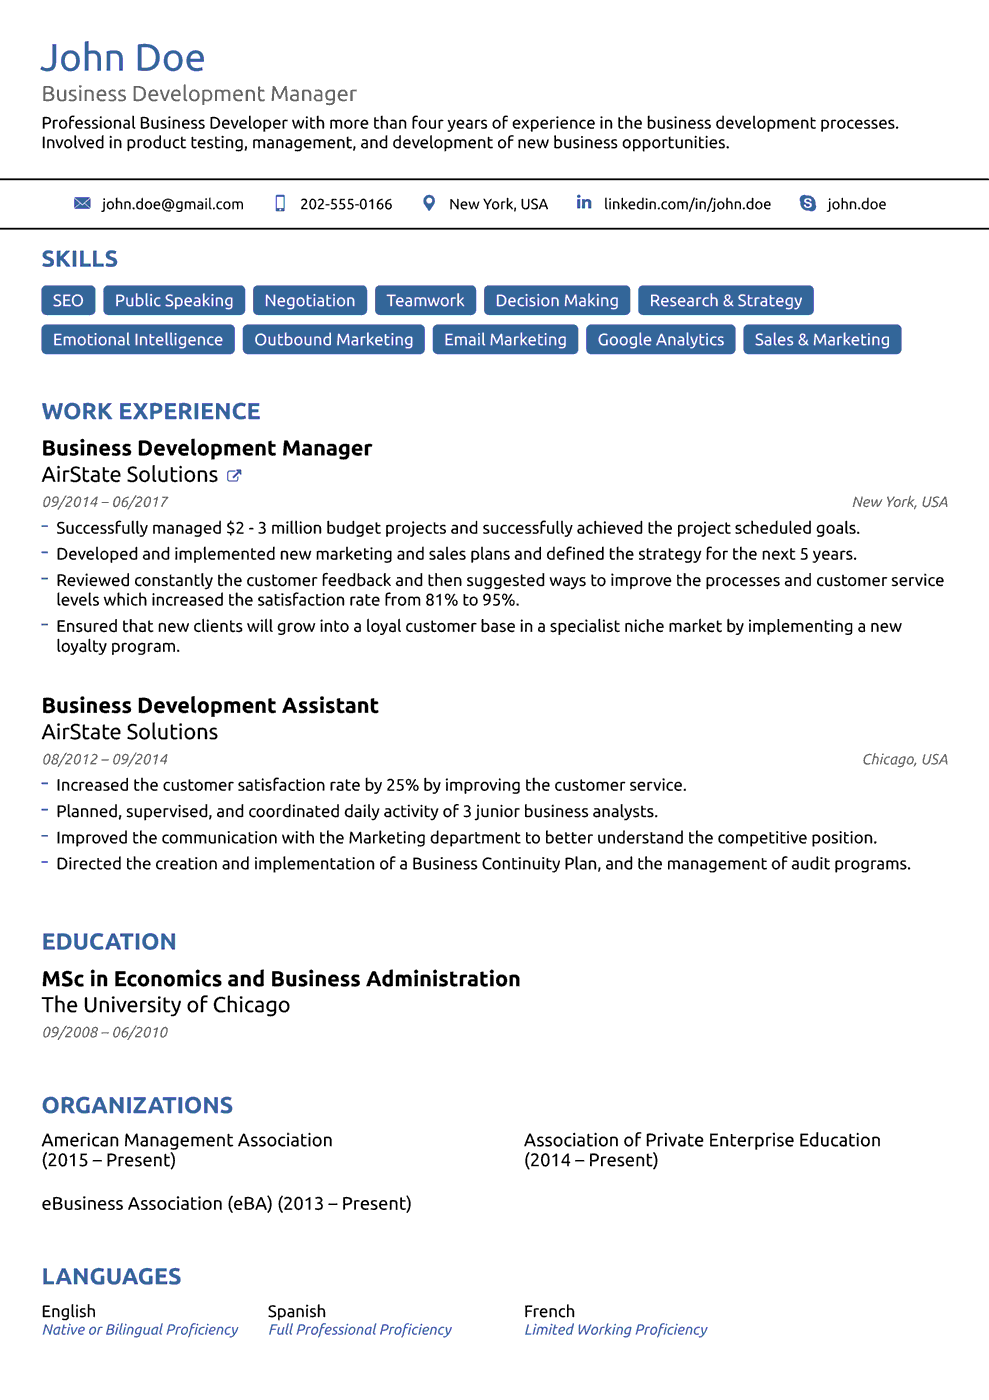 Resume Classy 448 Professional Resume Templates As They Should Be [48]